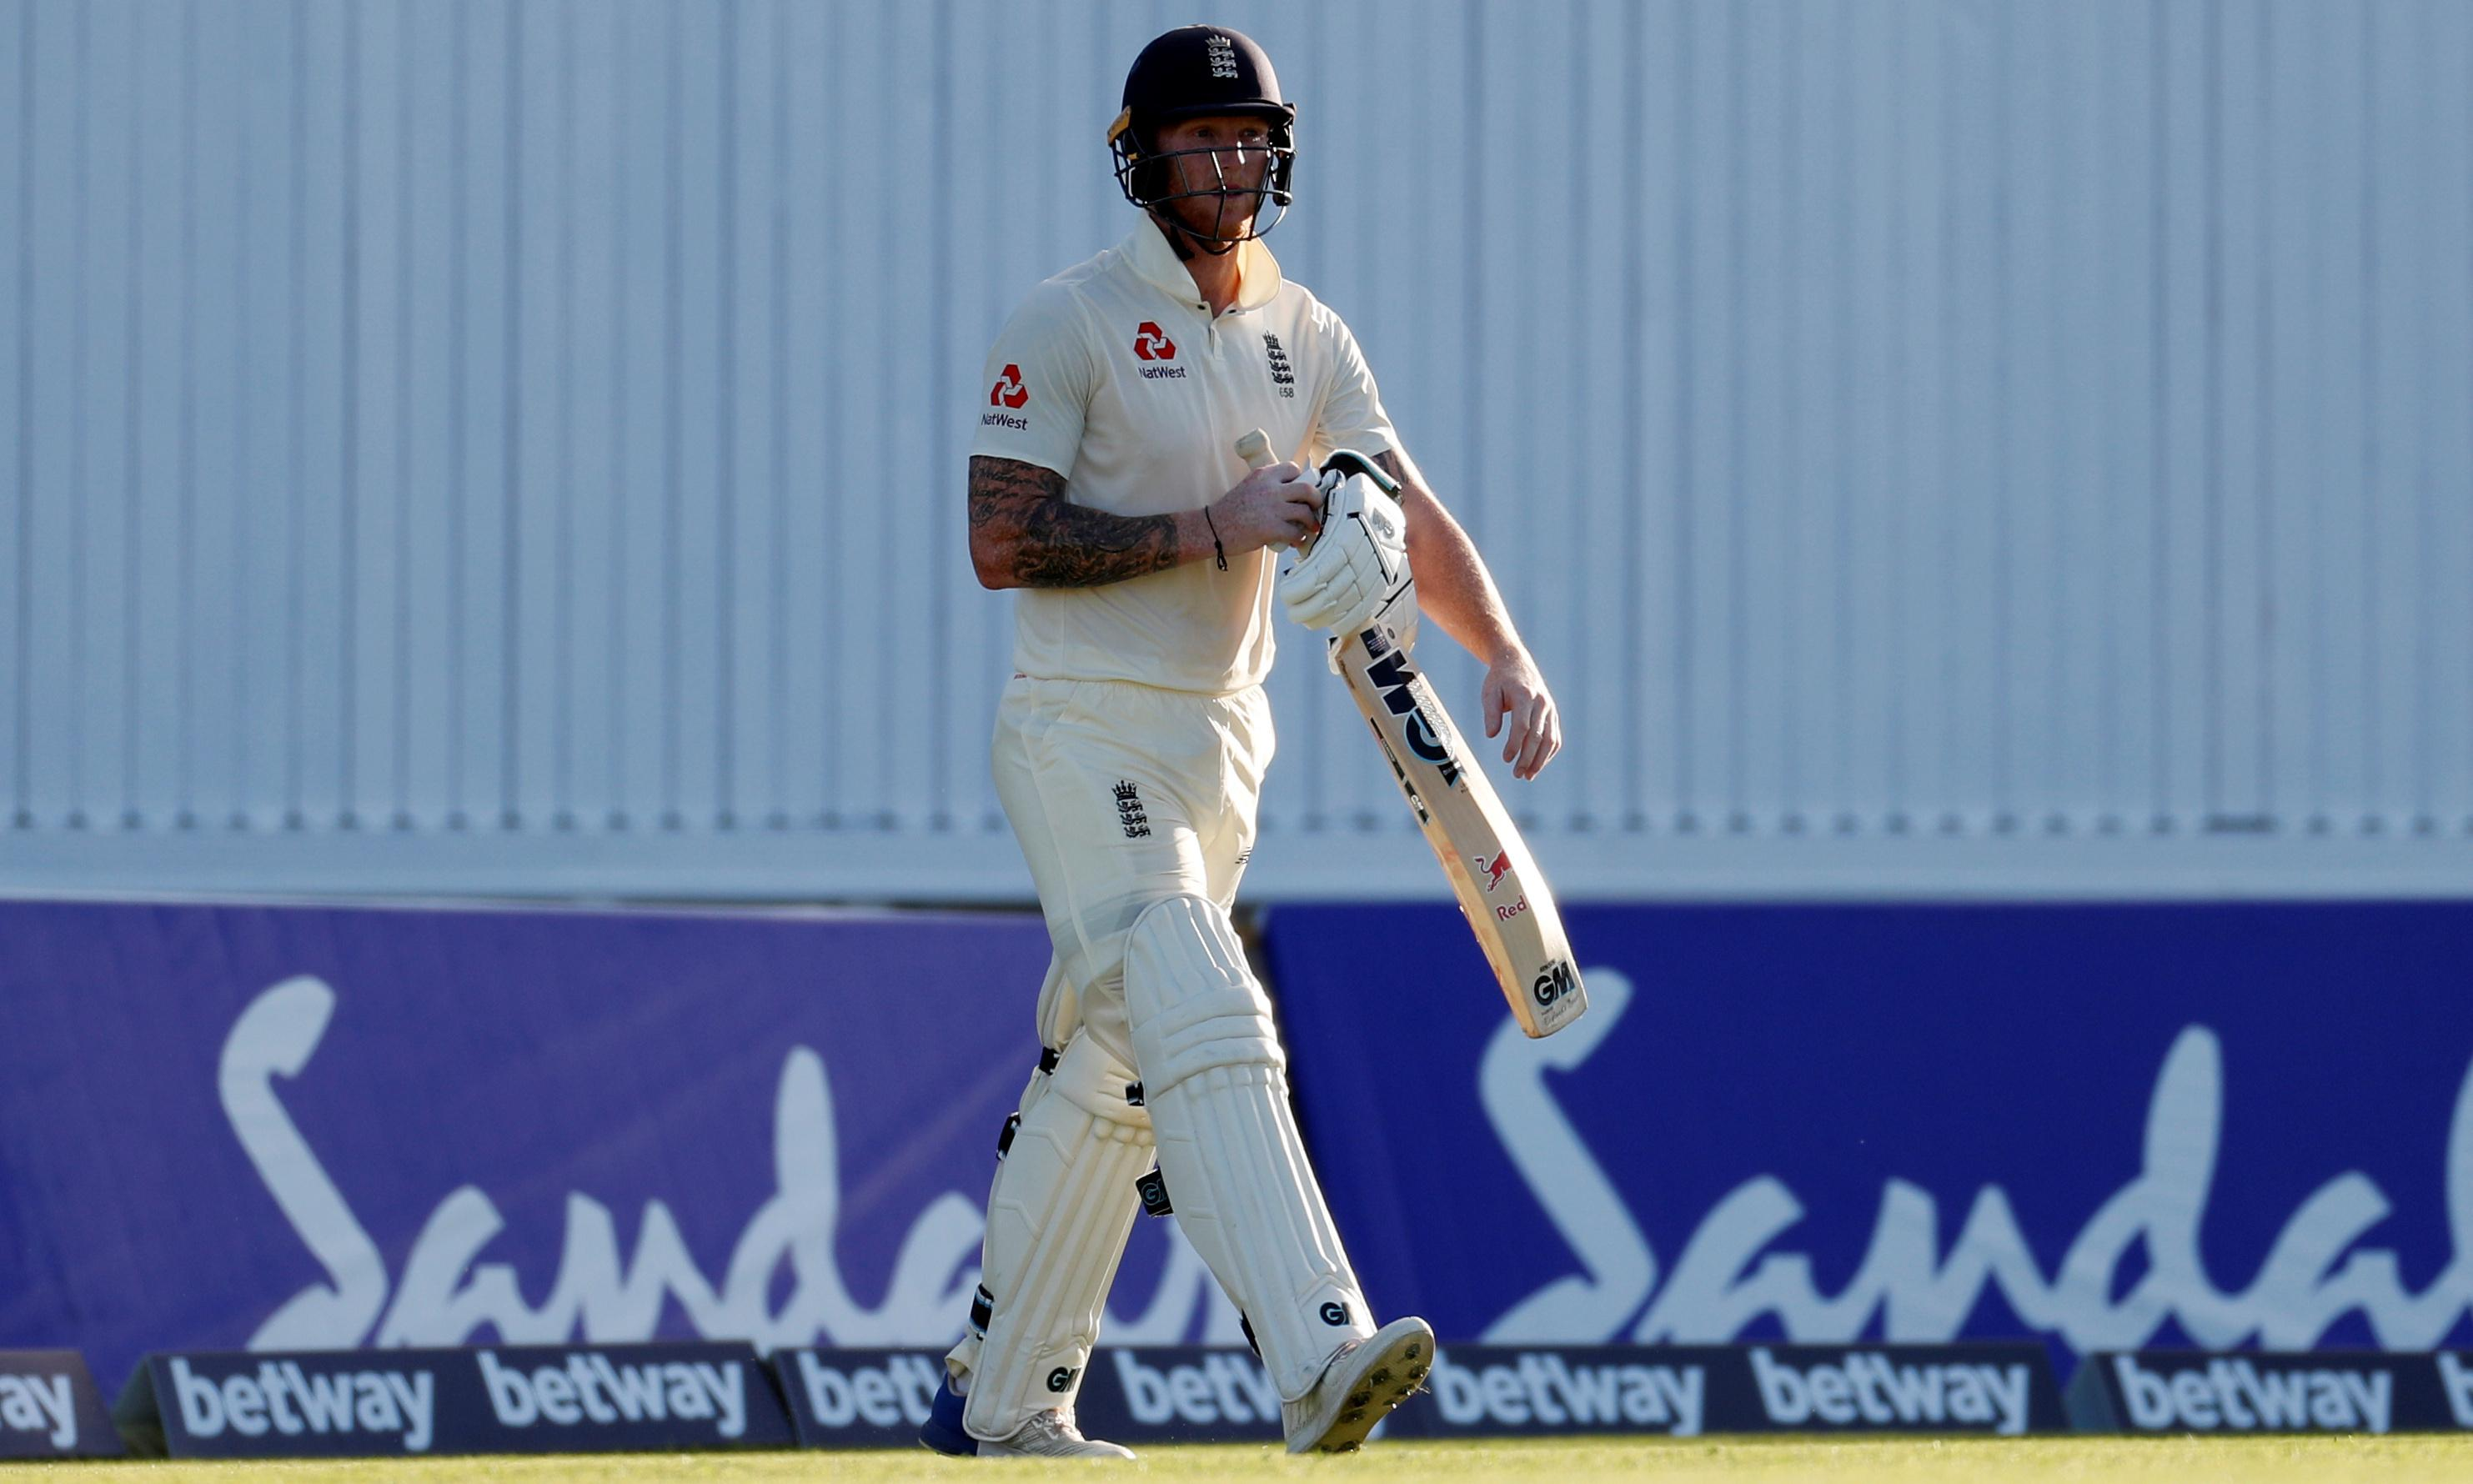 Ben Stokes: 'I didn't take my pads off, I was just sat in my chair'